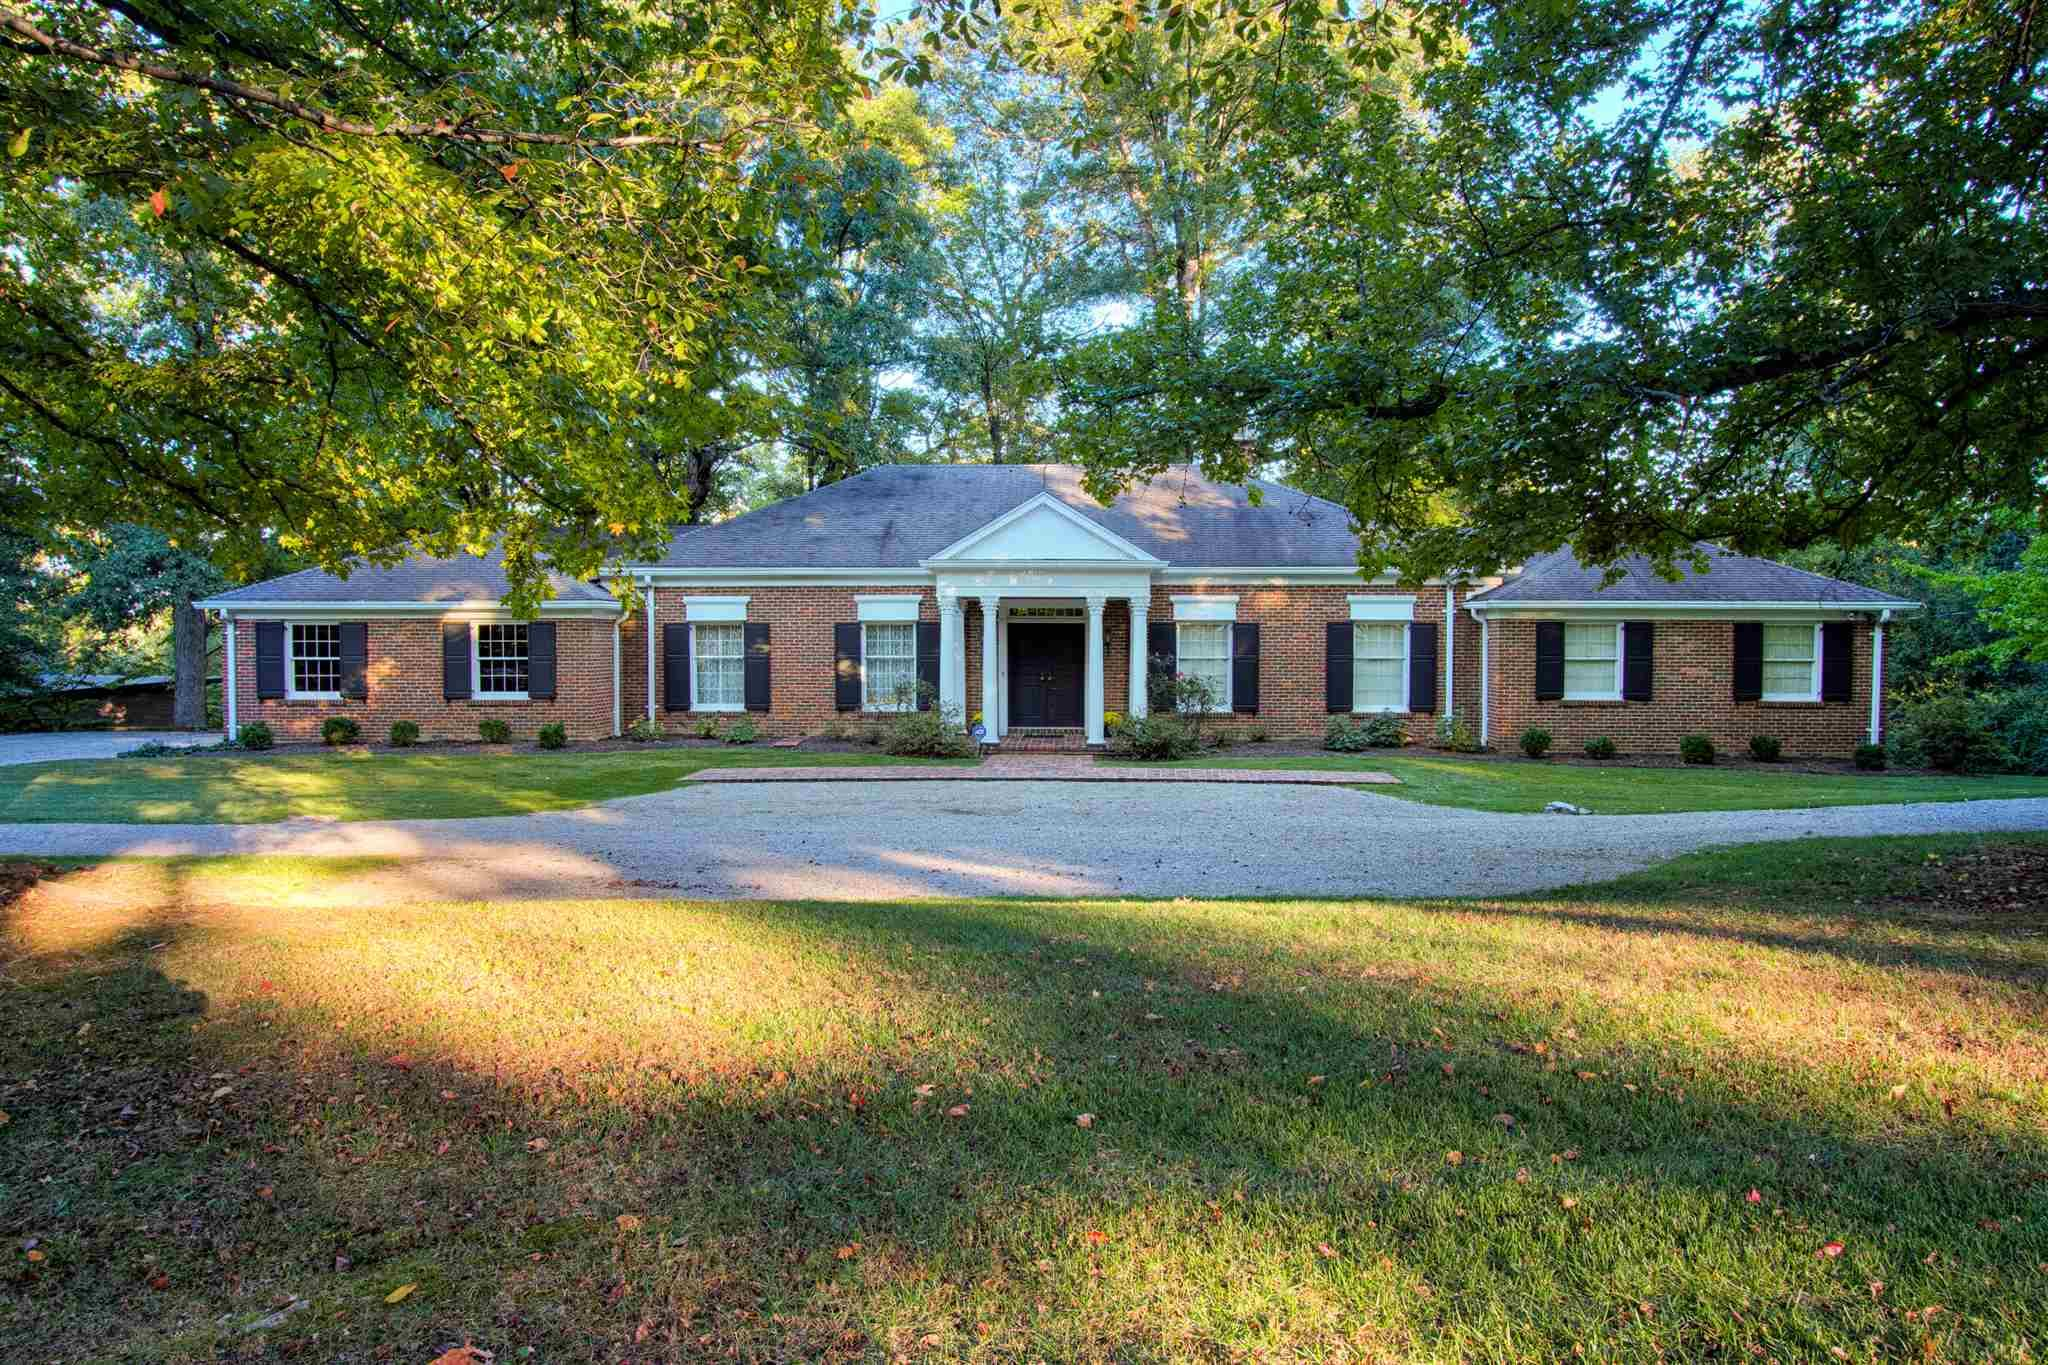 This McCutchanville Estate offers a private setting on 2.25+/- acres with lake frontage and beautiful views. This 4 bedroom, 3 bath home with walk-out lower level offers a new roof and has been loved and cared for by the same family over the years. The foyer with transom window opens to the spacious living room dining room combo making this floor plan perfect for entertaining. The large kitchen offers an abundance of cabinetry and is open to the dining area. The spacious great room with hardwood flooring has floor to ceiling windows providing beautiful views of the ground and lake. This great space offers an abundance of charm and character with beamed ceiling and a fireplace with wall of built-ins. The main level master bedroom offers double closets and a large master bath with walk-in shower. There are two additional main level bedrooms one with hardwood flooring and one with built-ins. There is also full hall bath with tub/shower combo. The large laundry located off the garage also has access to the back covered porch. The floored walk up attic space offers an abundance of space for storage and could be finished for additional living area if desired.  The finished walkout lower level offers a large family room with built-in wet bar, fireplace, and access to the large patio overlooking the grounds with mature trees and lake frontage. This level also offers an additional bedroom that is perfect for in-laws and guests with private access to a full hall bath with walk-in shower. The lower level offers an abundance of storage space including a workshop. This custom built one owner home is conveniently located with easy access to great schools, shopping, dining, and major employers.